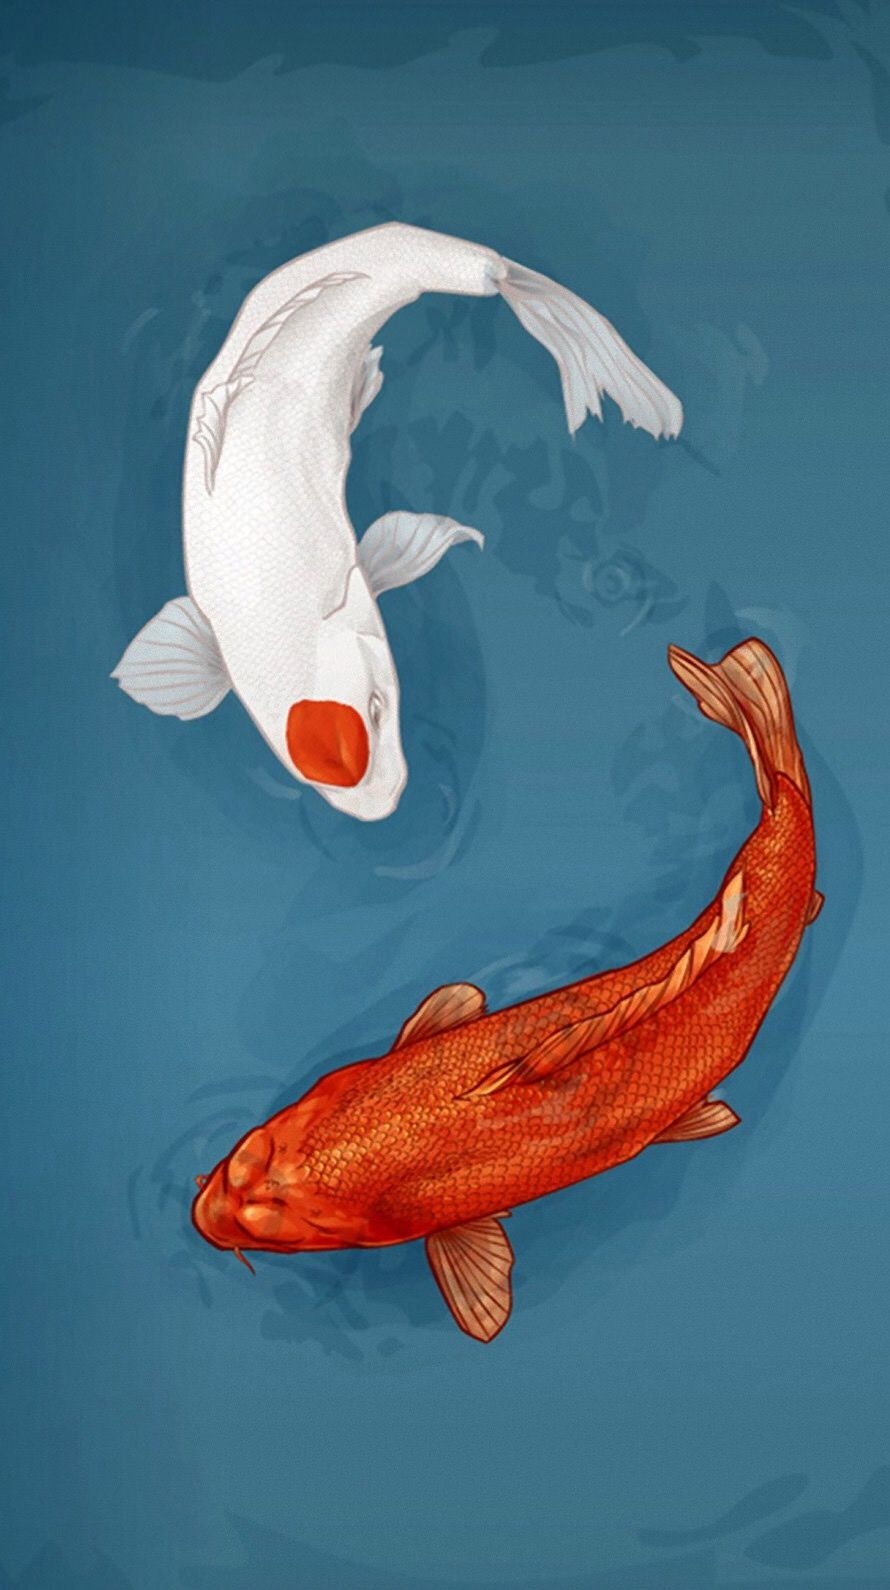 Pin By Chanel Aprahamian On Anime Wallpapers Fish Drawings Underwater Drawing Underwater Images